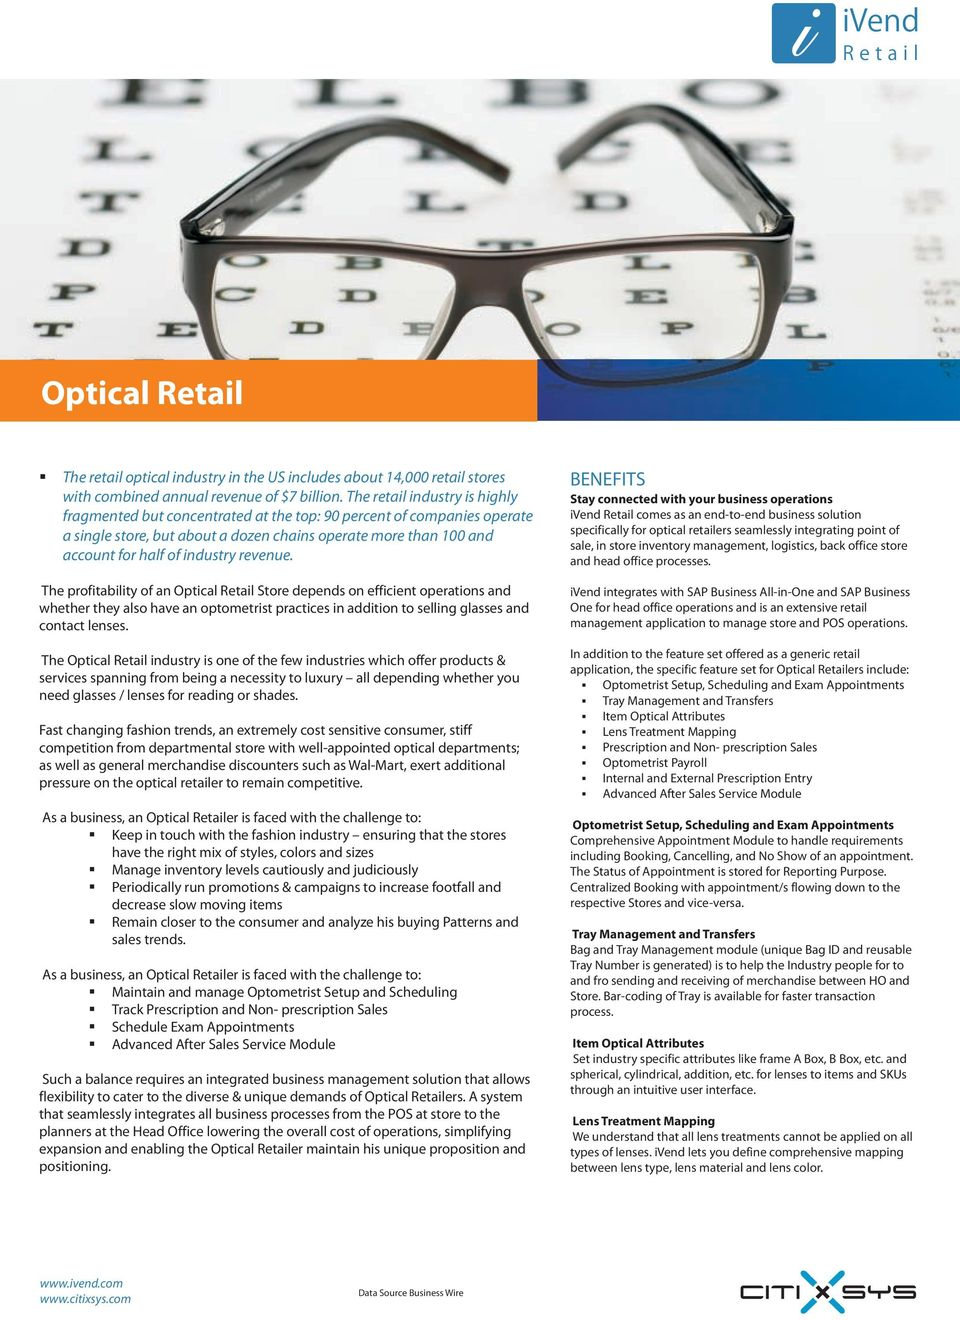 revenue. The profitability of an Optical Store depends on efficient operations and whether they also have an optometrist practices in addition to selling glasses and contact lenses.